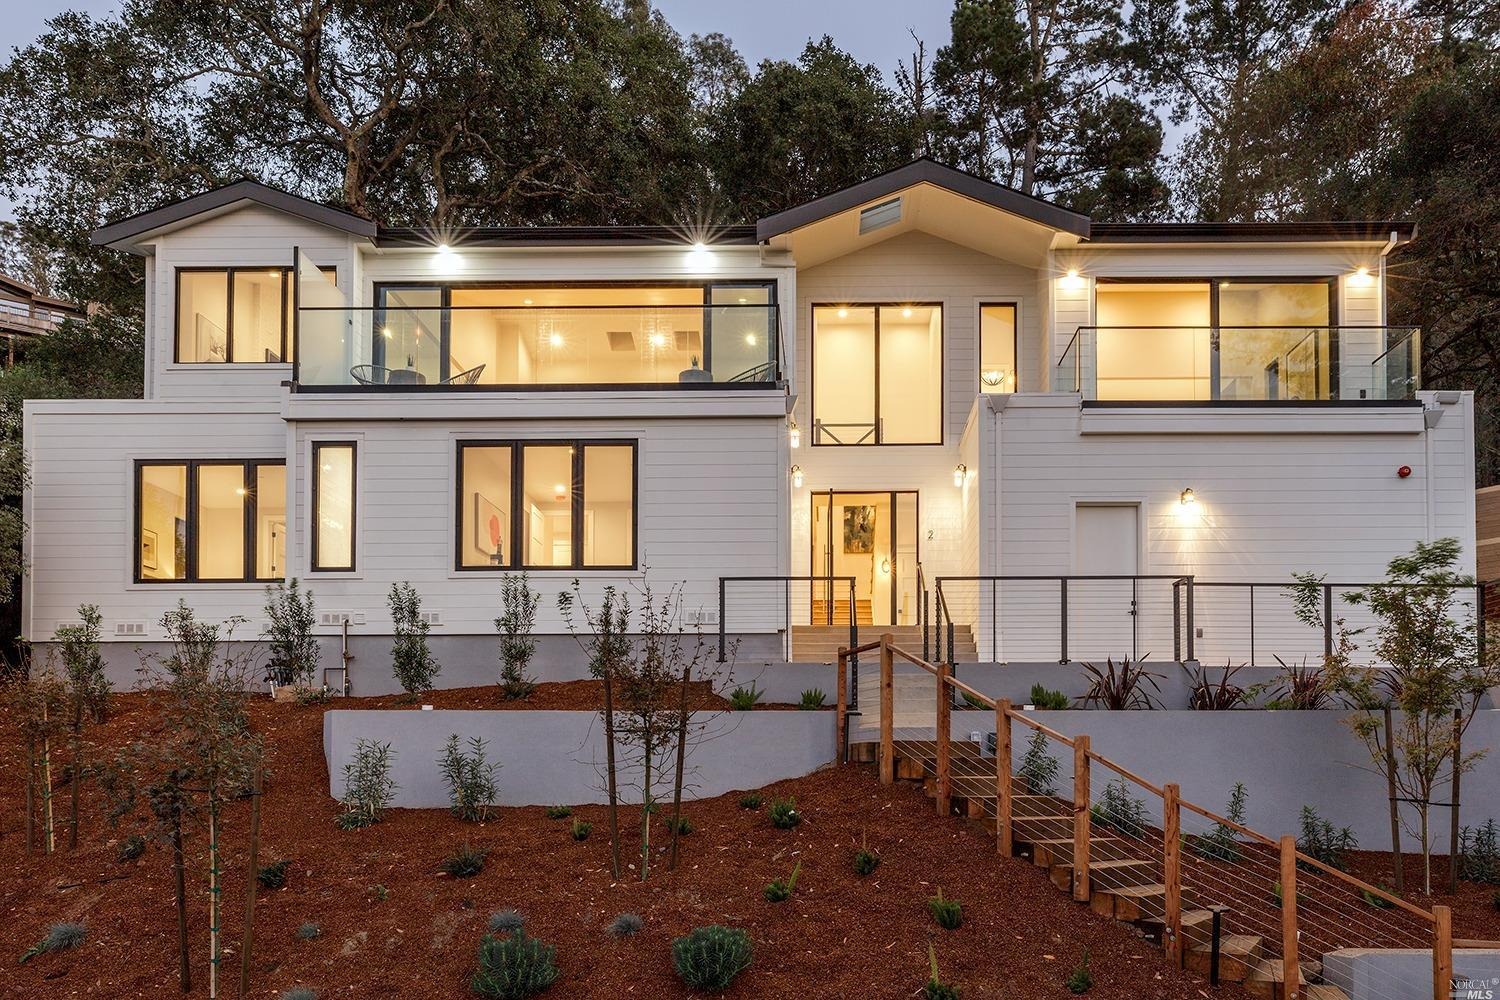 One of the Bay Area's most prolific developers has just released a contemporary beach inspired home of unparalleled design. Grand in scale, the two level residence offers high ceilings, tall walls of glass, and all day natural light. In addition to the breathtaking views, there is a large flat private backyard. The five bedroom, five and a half bathroom  +4400 square foot residence on .61 acres, has a highly desirable, versatile floorplan with a fabulous, huge, open great room, as well as a lower level media room. In addition there is an additional legal 1 bedroom 1 bath guest unit. The residence is ideal for families, couples, or empty nesters.